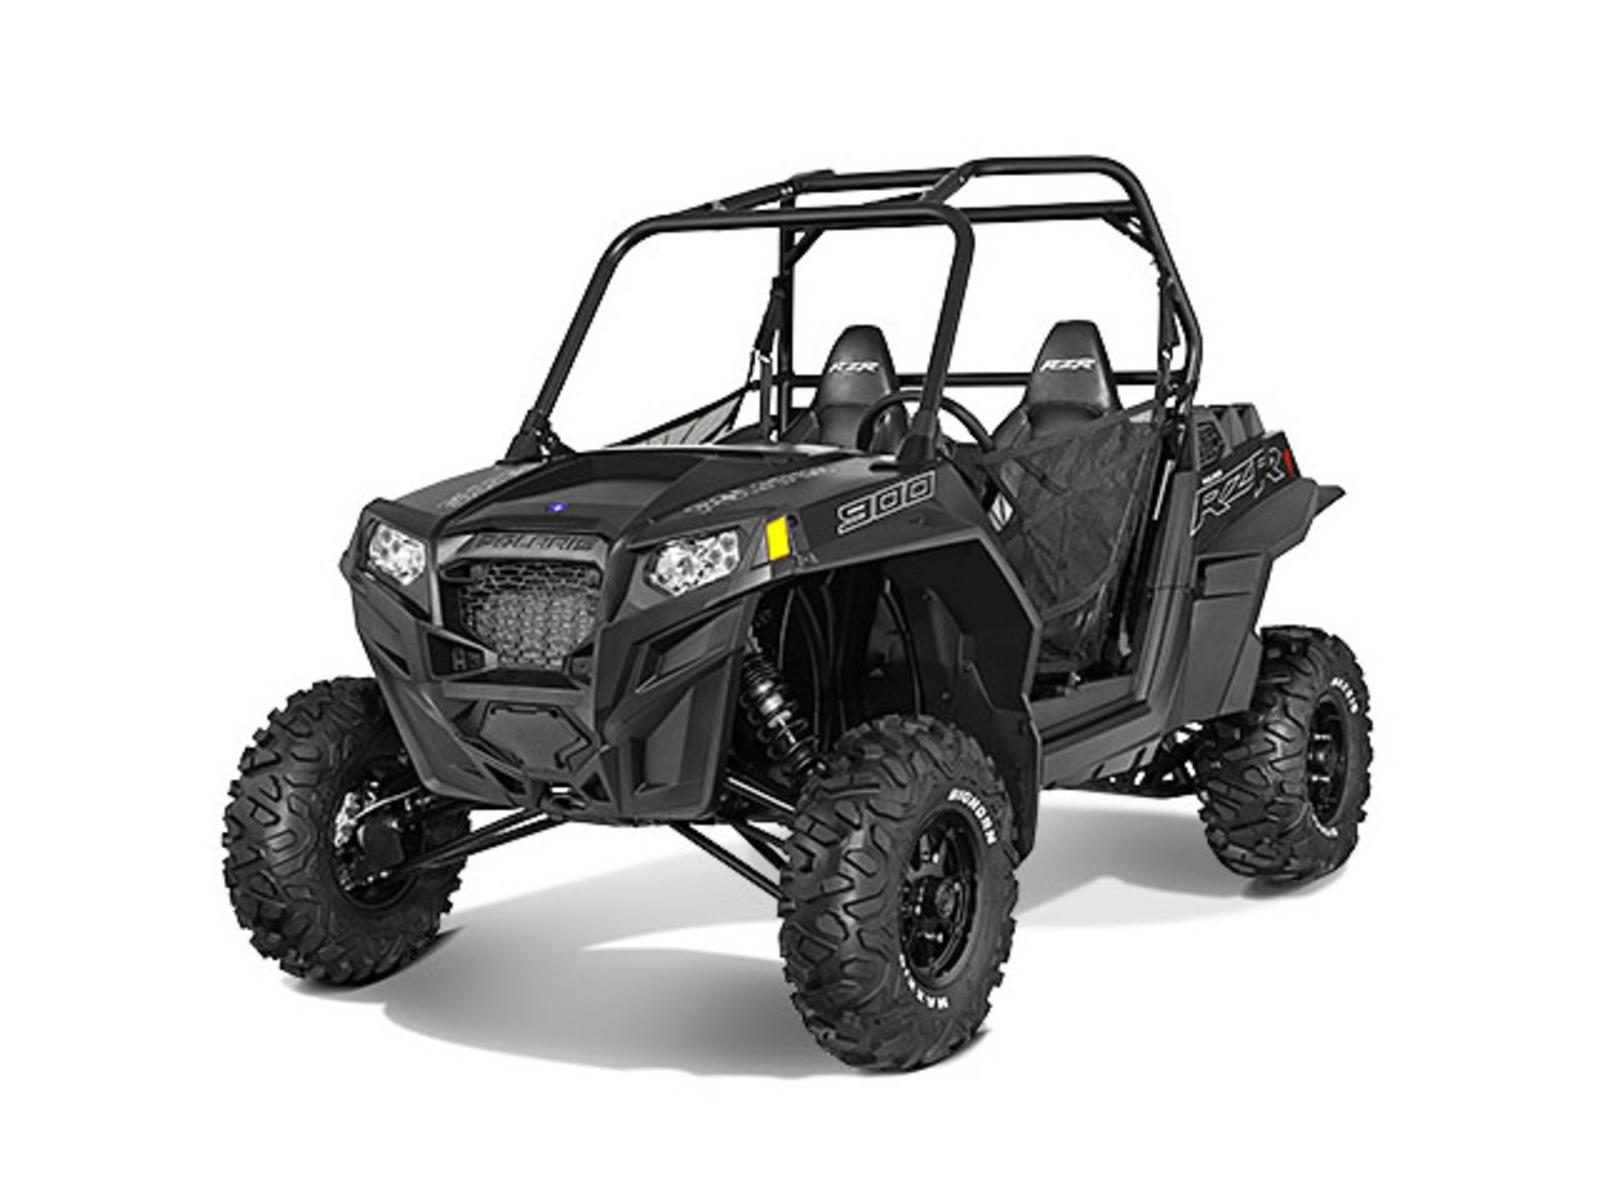 2014 polaris rzr 900 review top speed. Black Bedroom Furniture Sets. Home Design Ideas